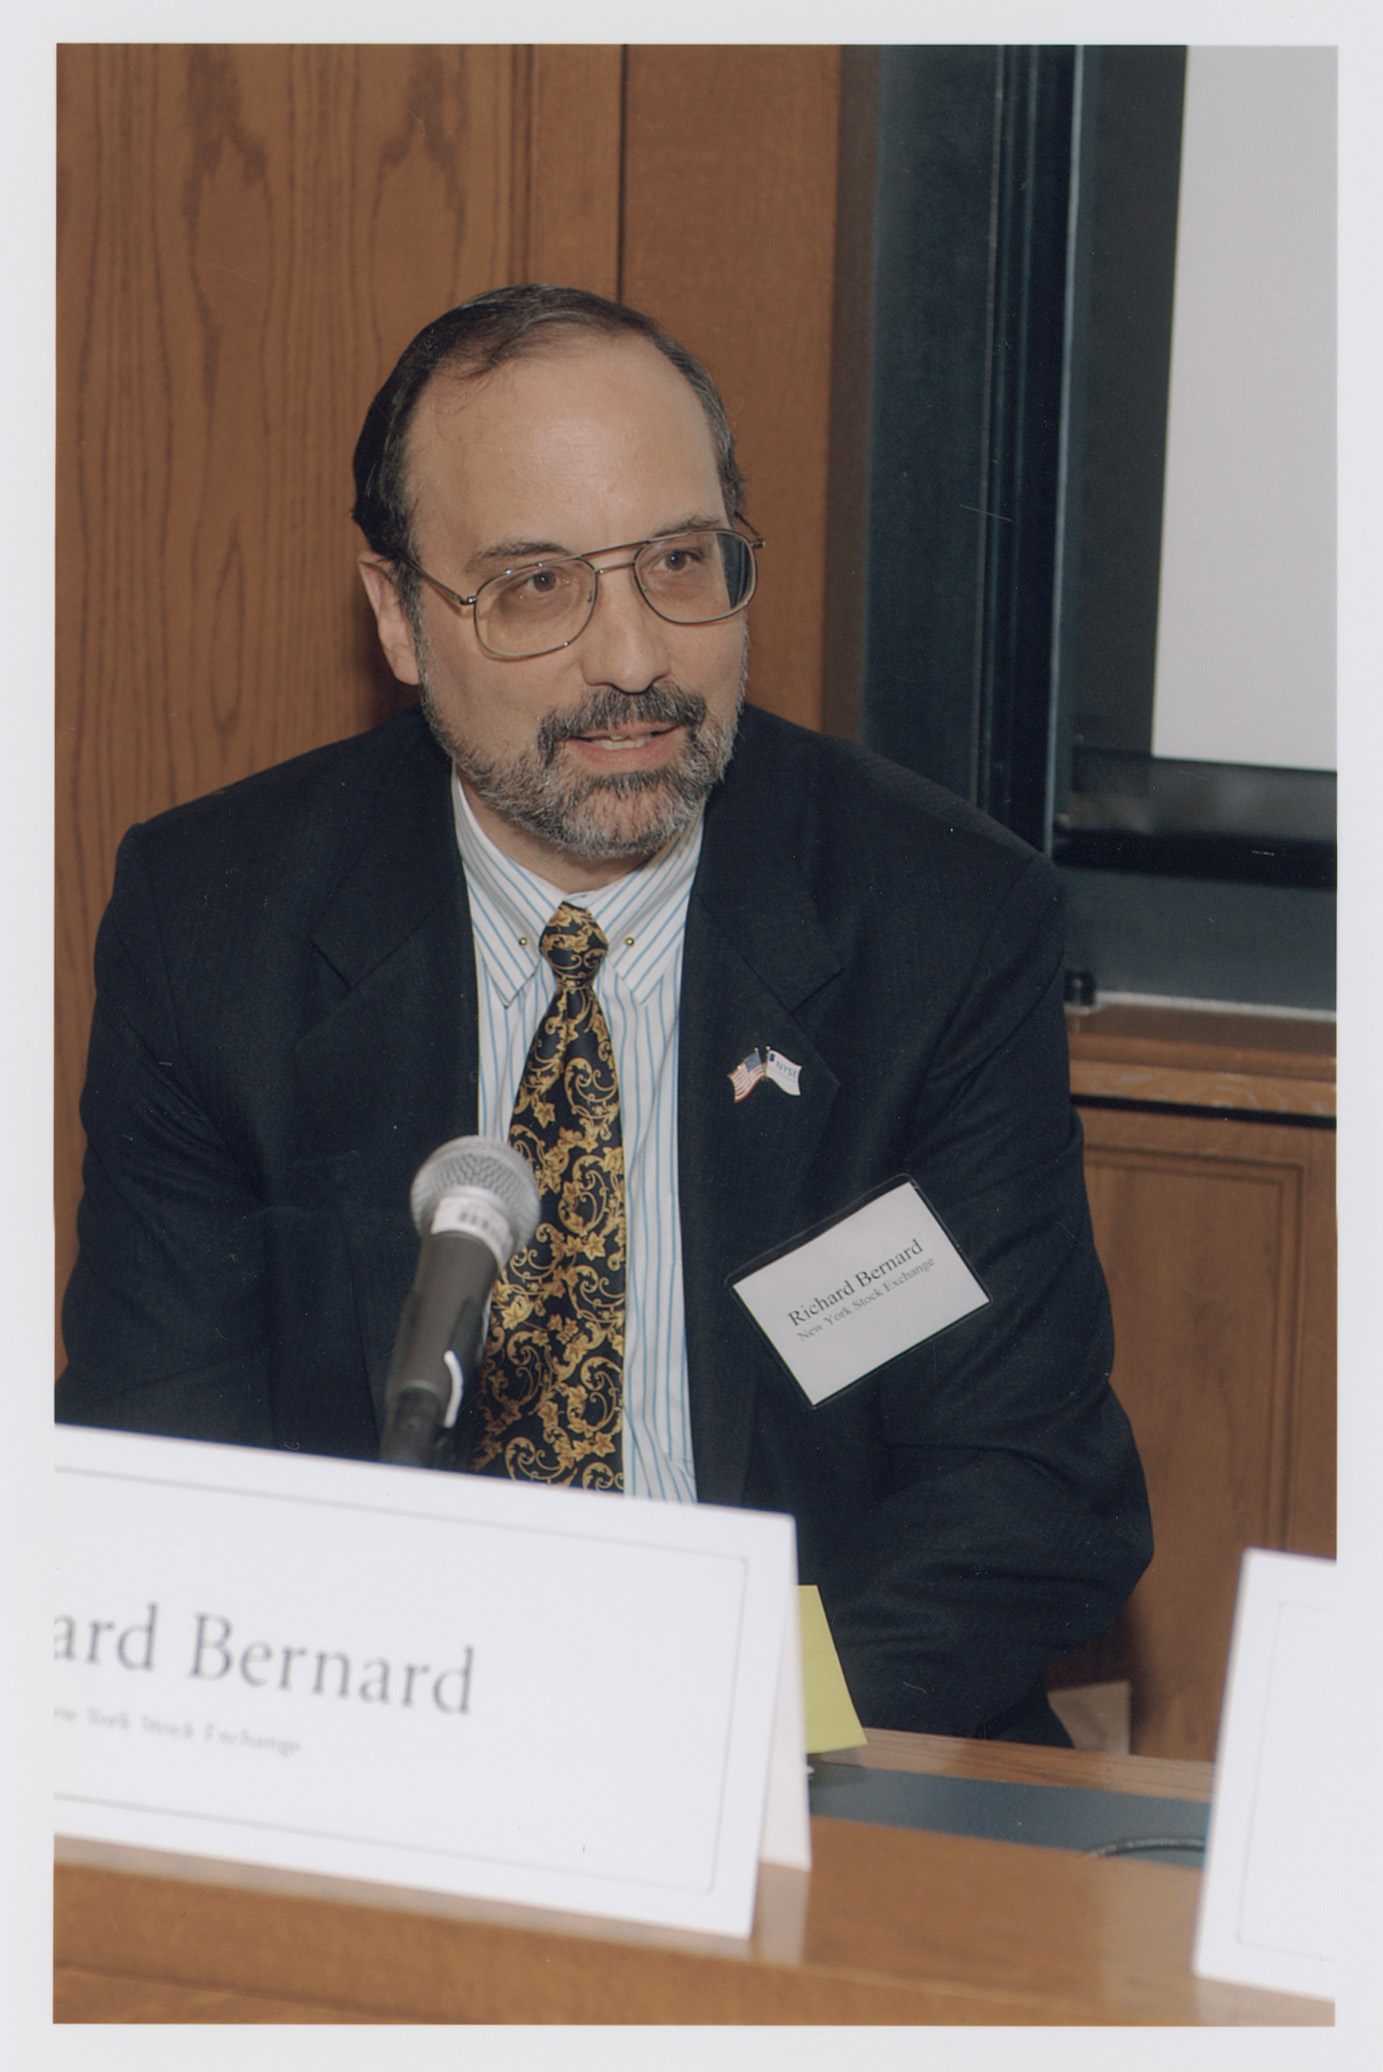 Richard Bernard